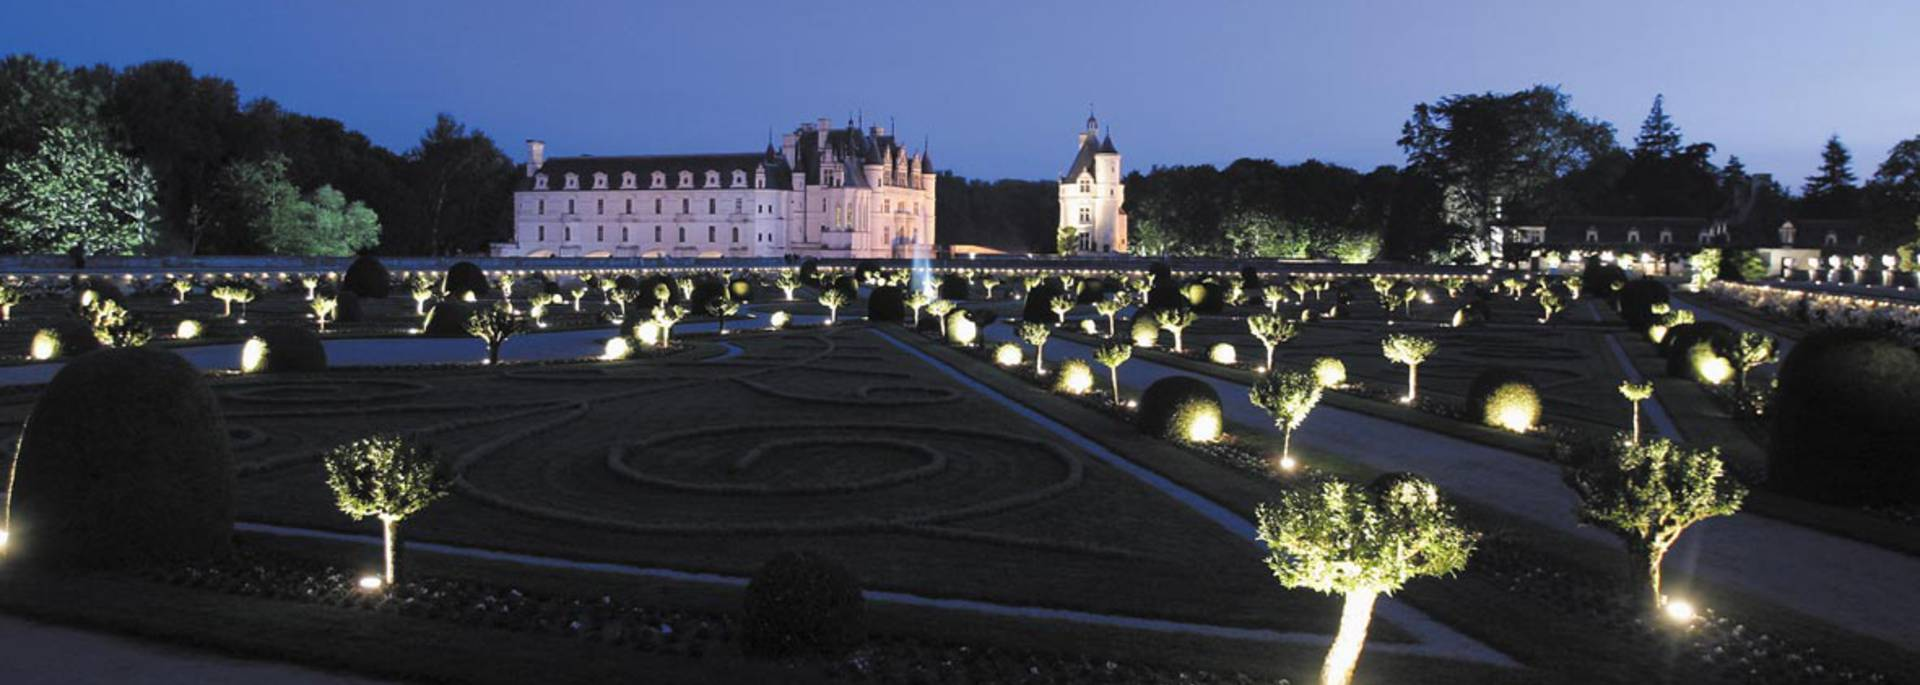 The Château de Chenonceau at night © Images de Marc